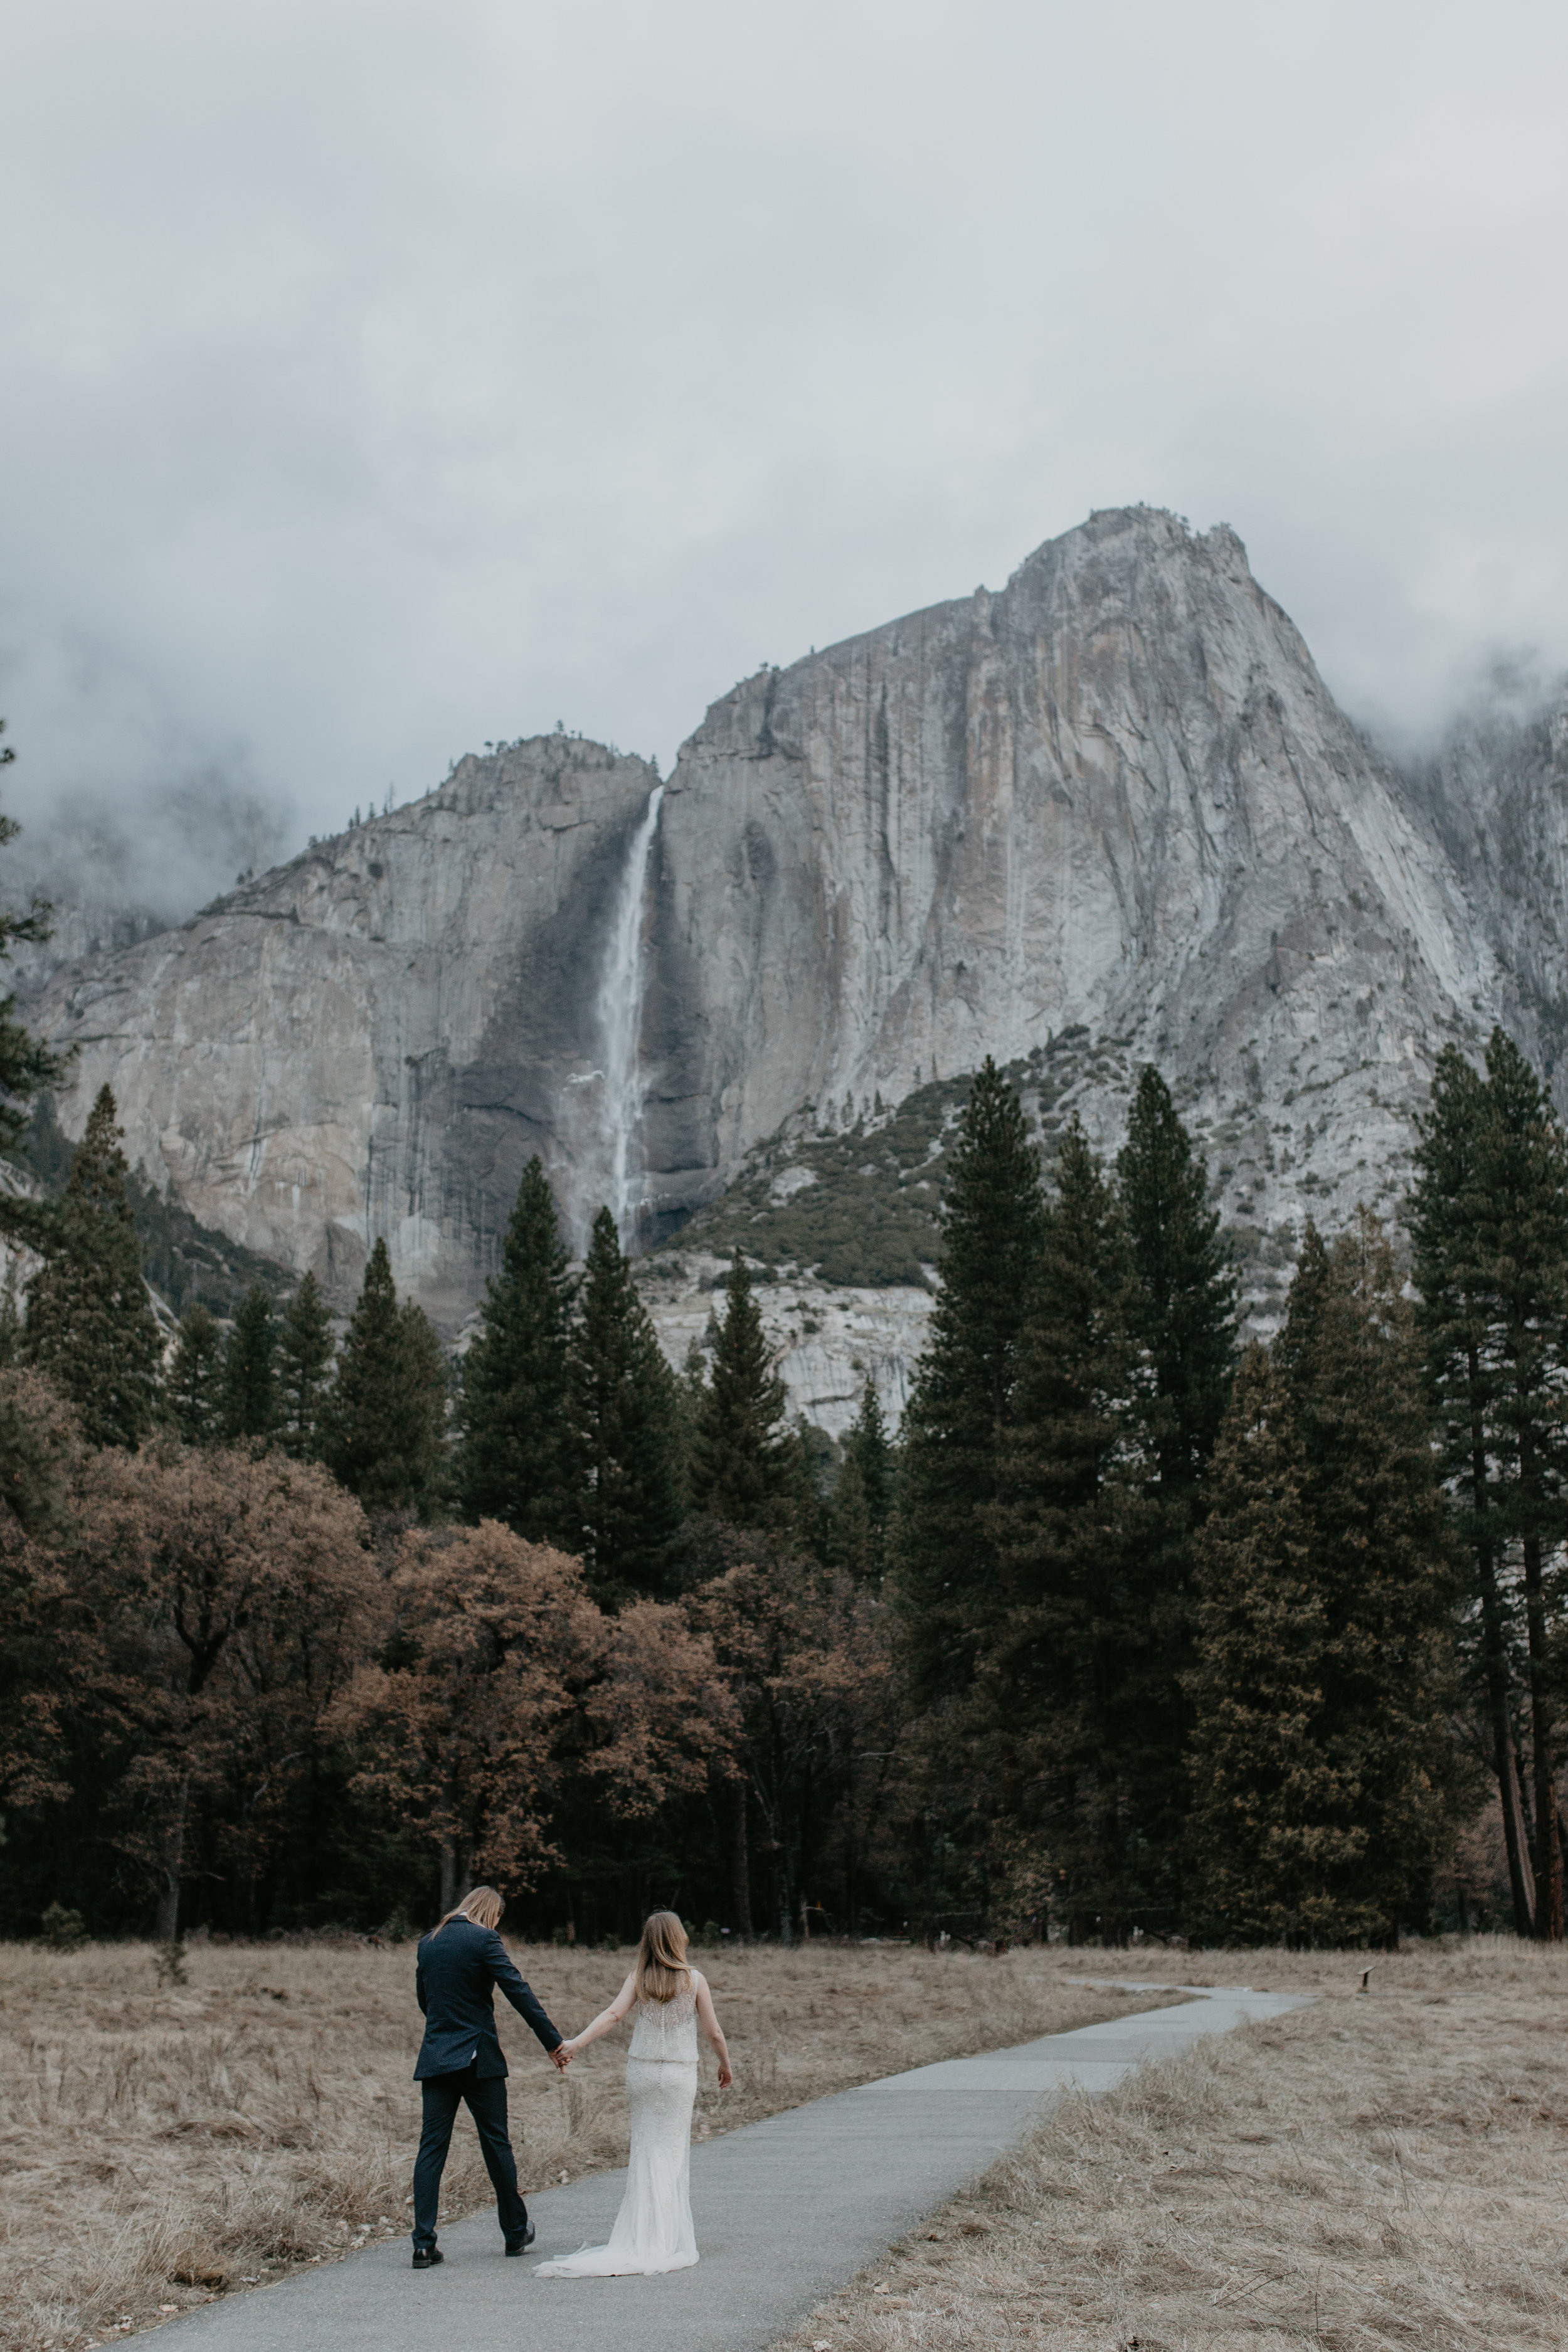 nicole-daacke-photography-yousemite-national-park-elopement-photographer-winter-cloud-moody-elope-inspiration-yosemite-valley-tunnel-view-winter-cloud-fog-weather-wedding-photos-21.jpg